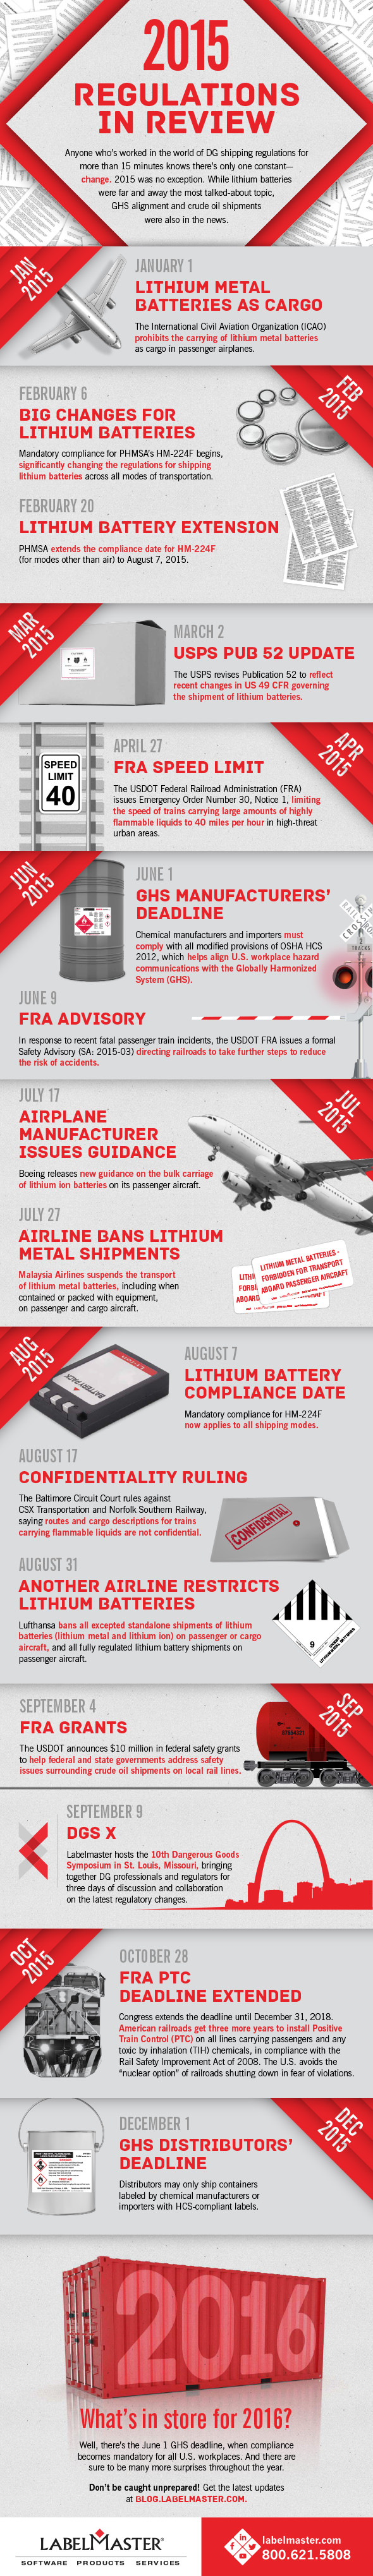 Labelmaster Infographic 2015 Regulations in Review